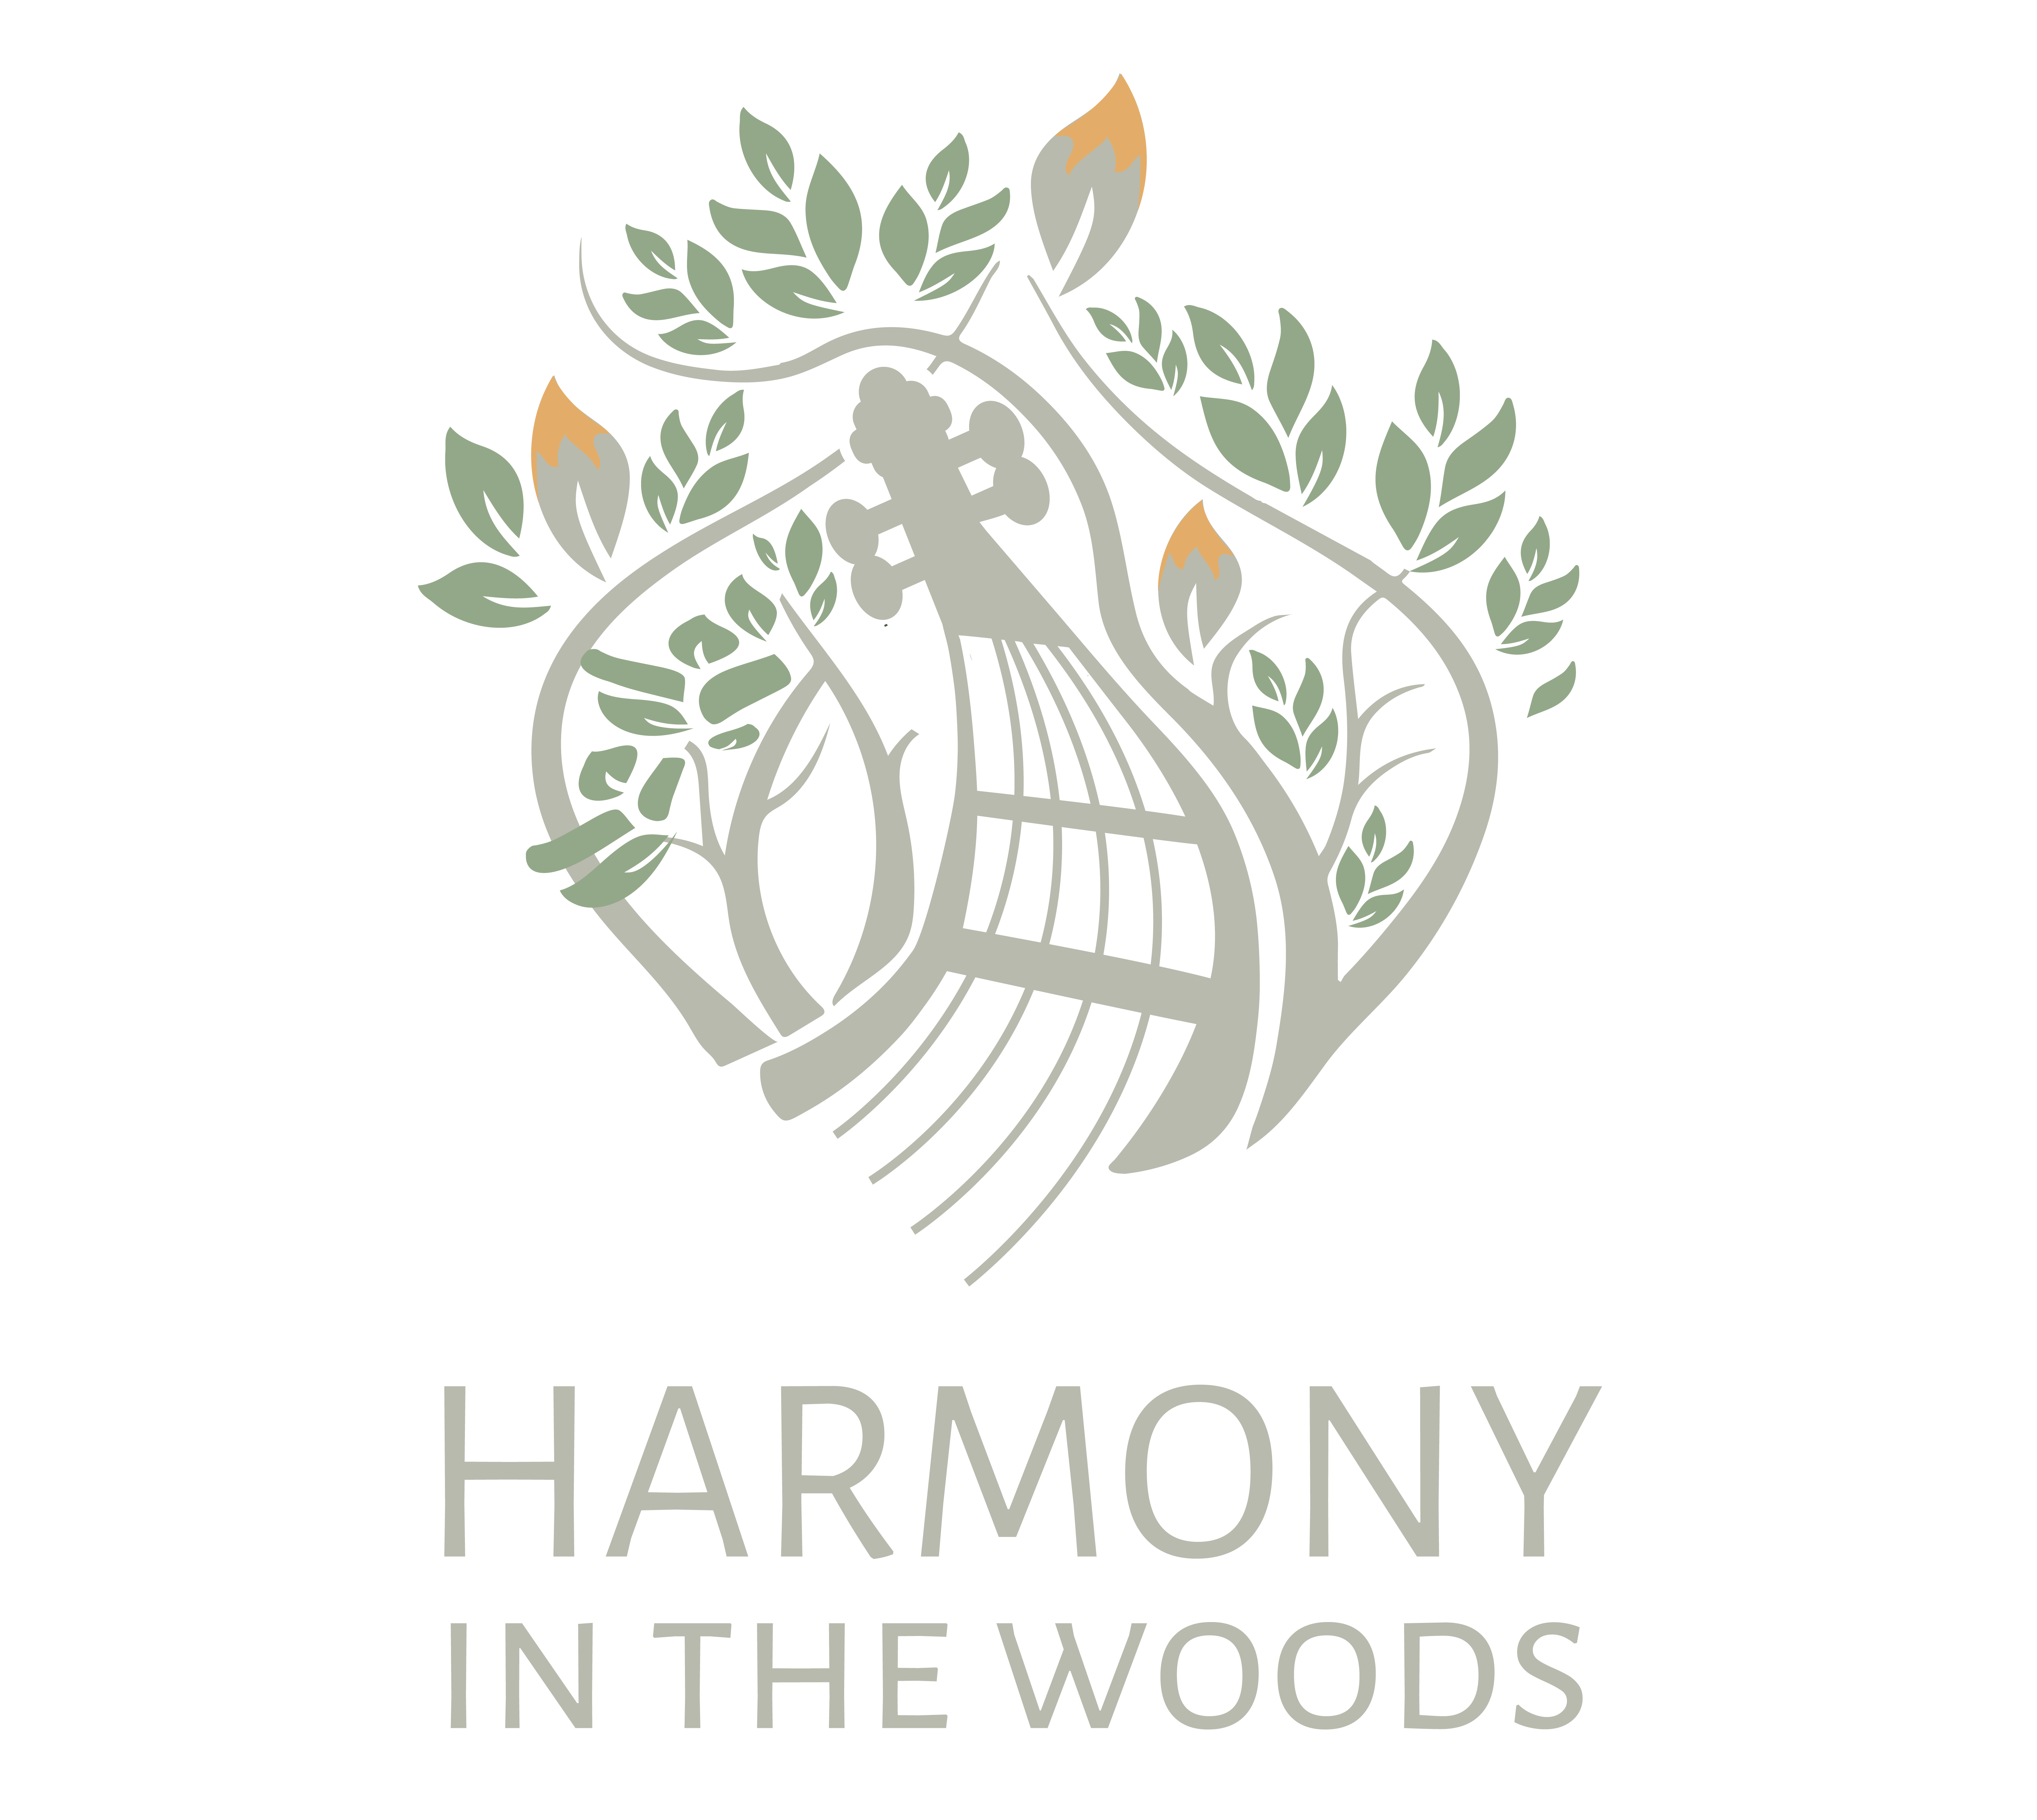 cropped-harmony-logos-no-background-01-e1594305550146.png